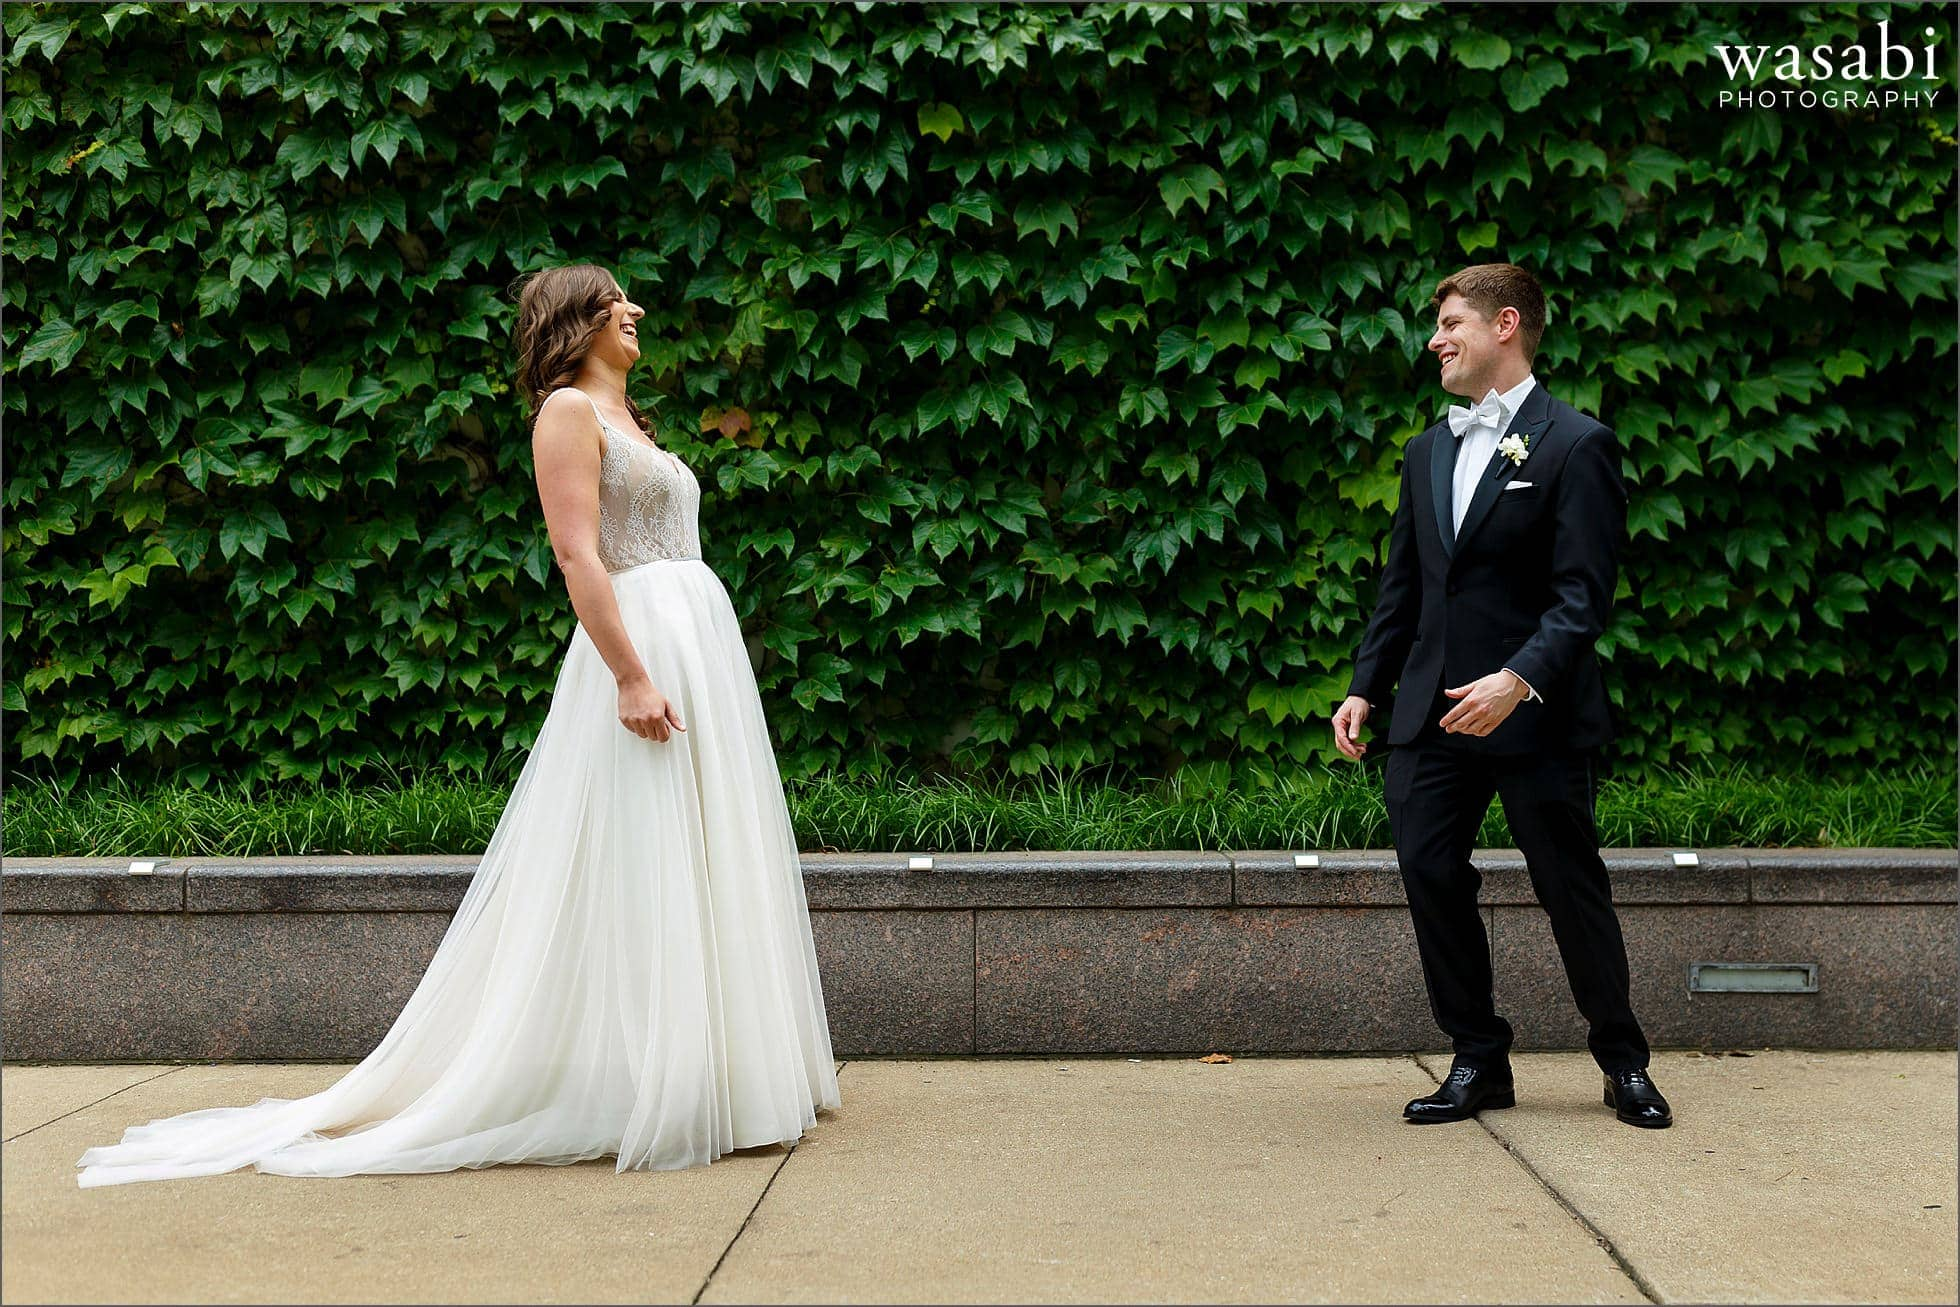 first look reaction on Chicago riverwalk with ivy in the background as bride and groom see each other for the first time on their wedding day